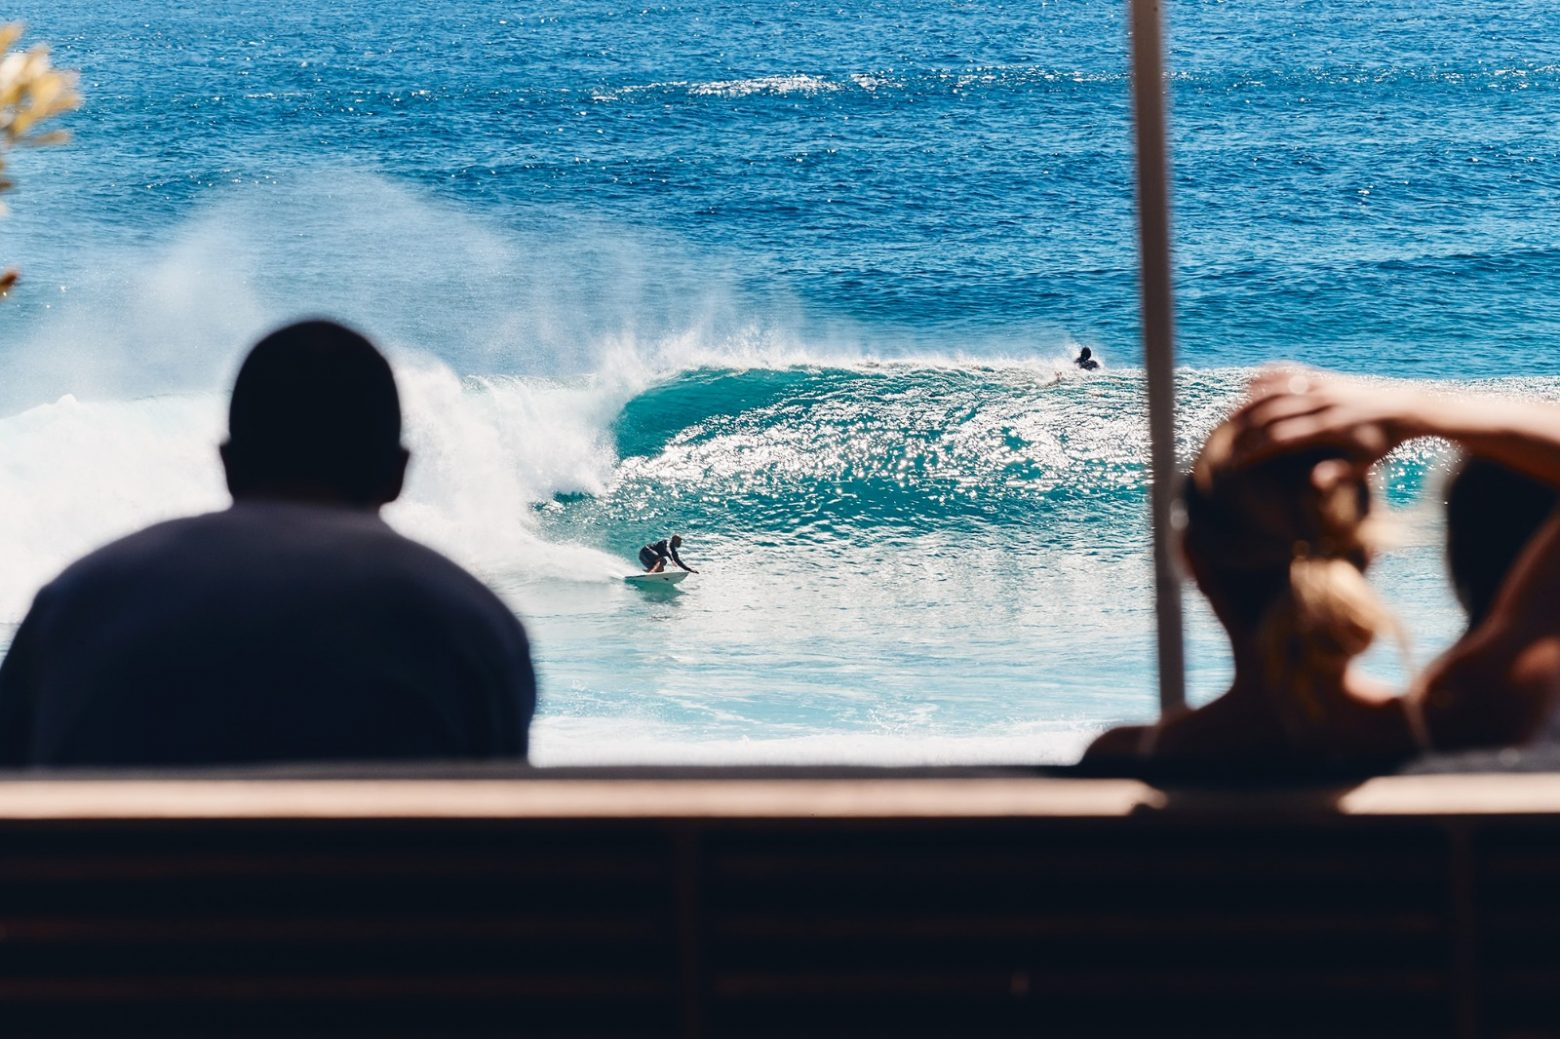 How good were the waves on the weekend? Pumping